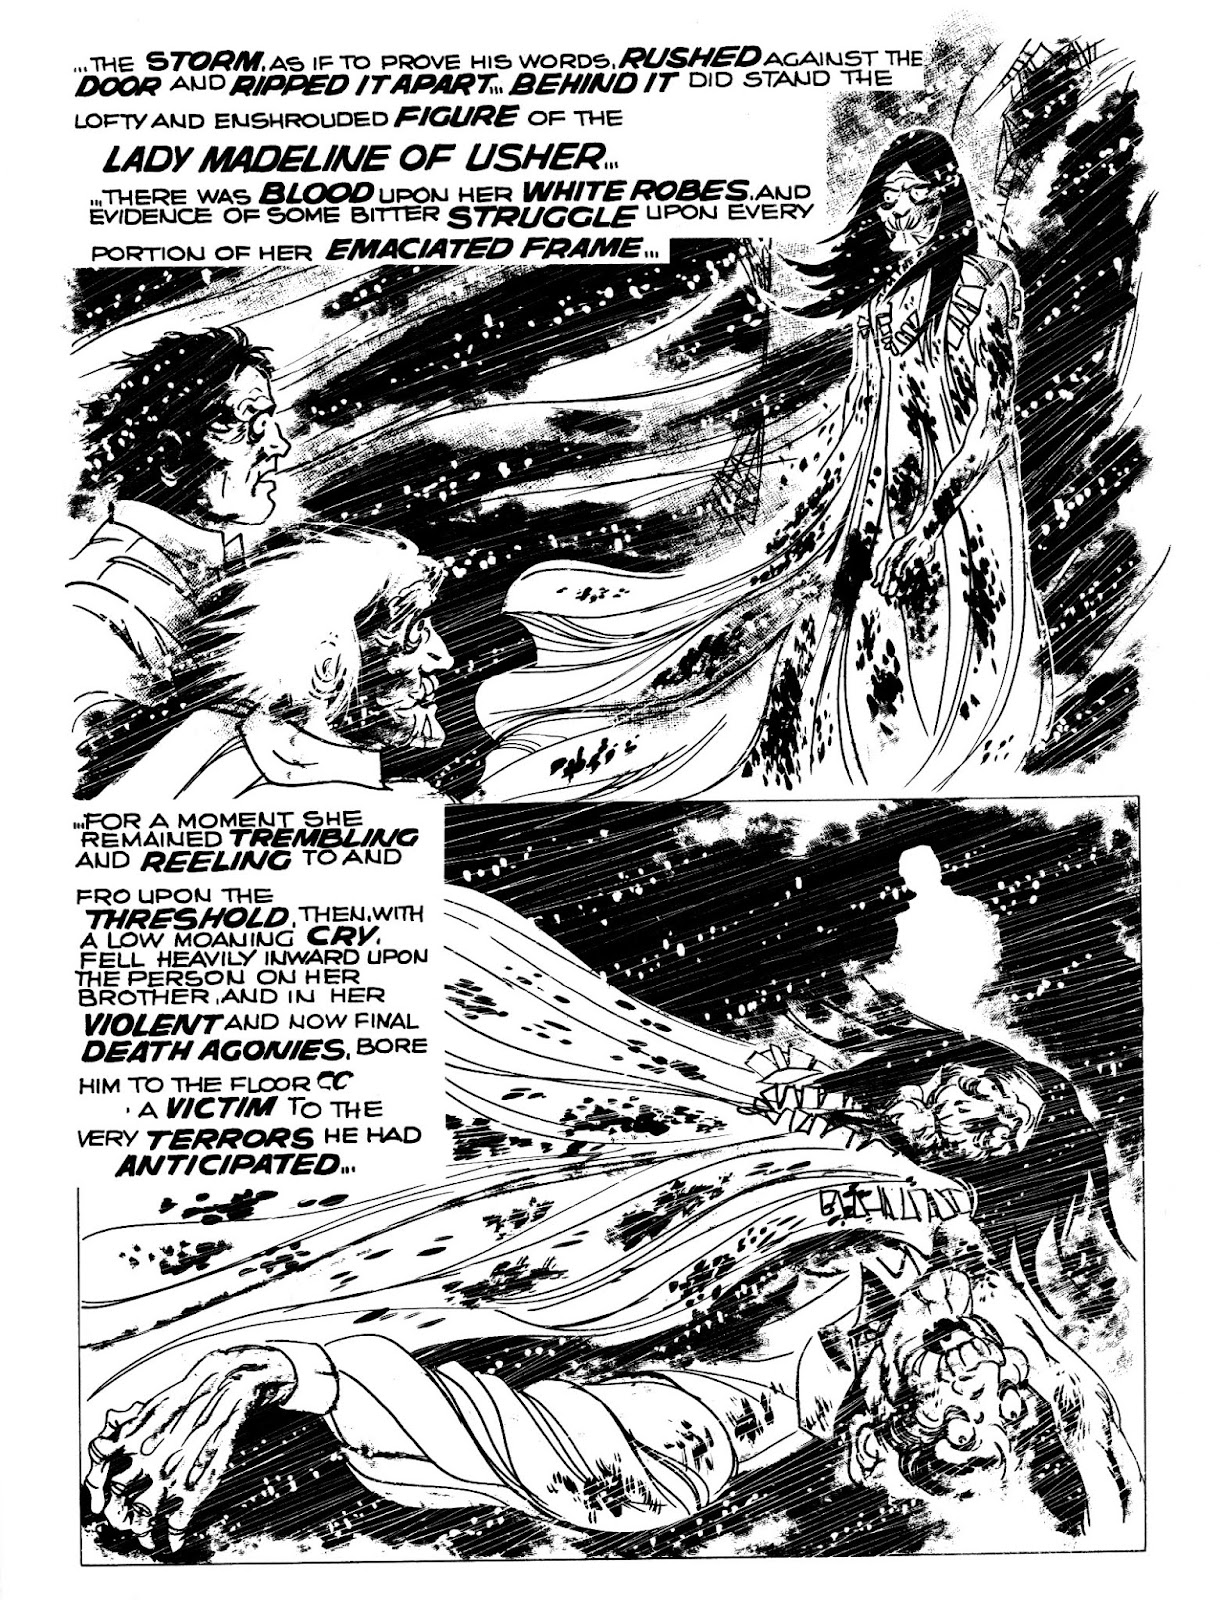 Scream (1973) issue 3 - Page 43